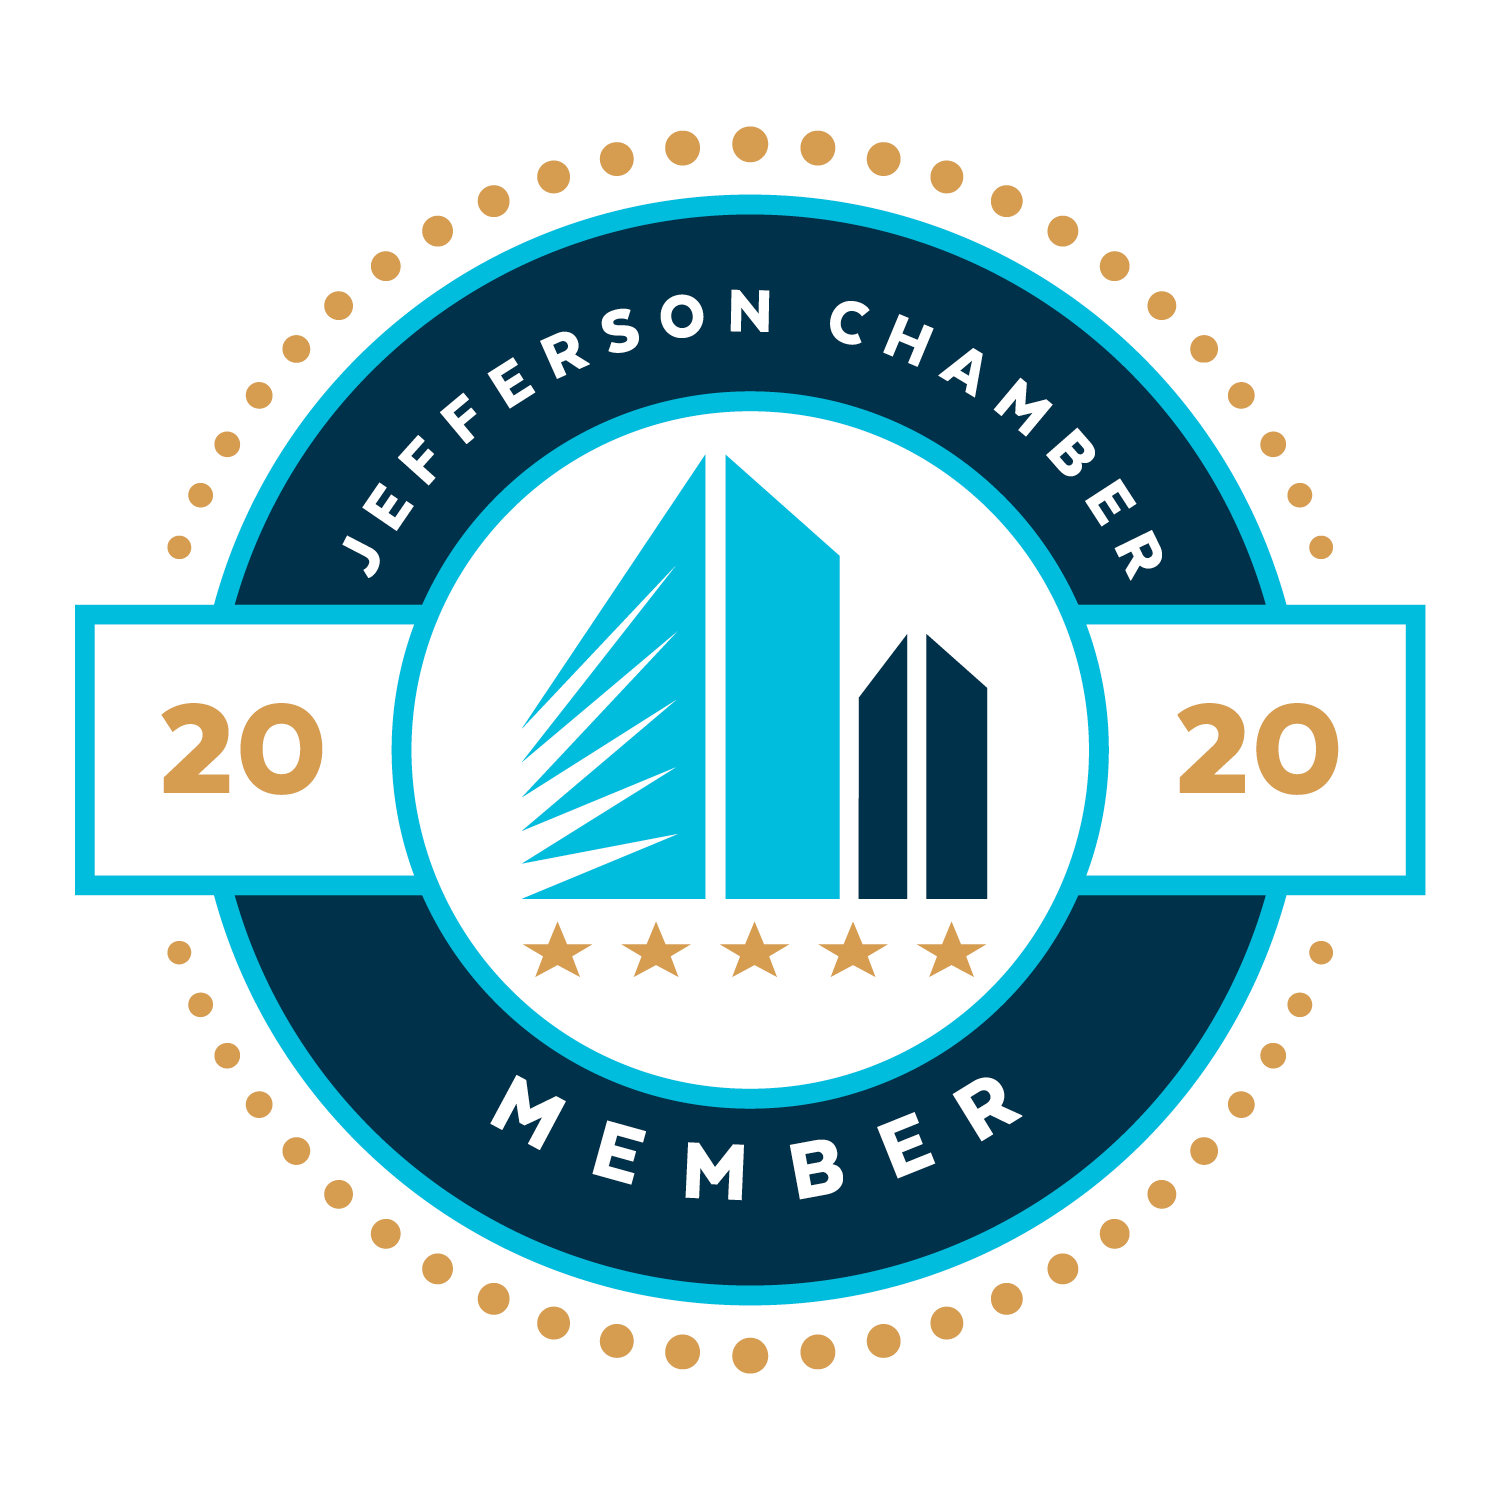 Jefferson Chamber official seal